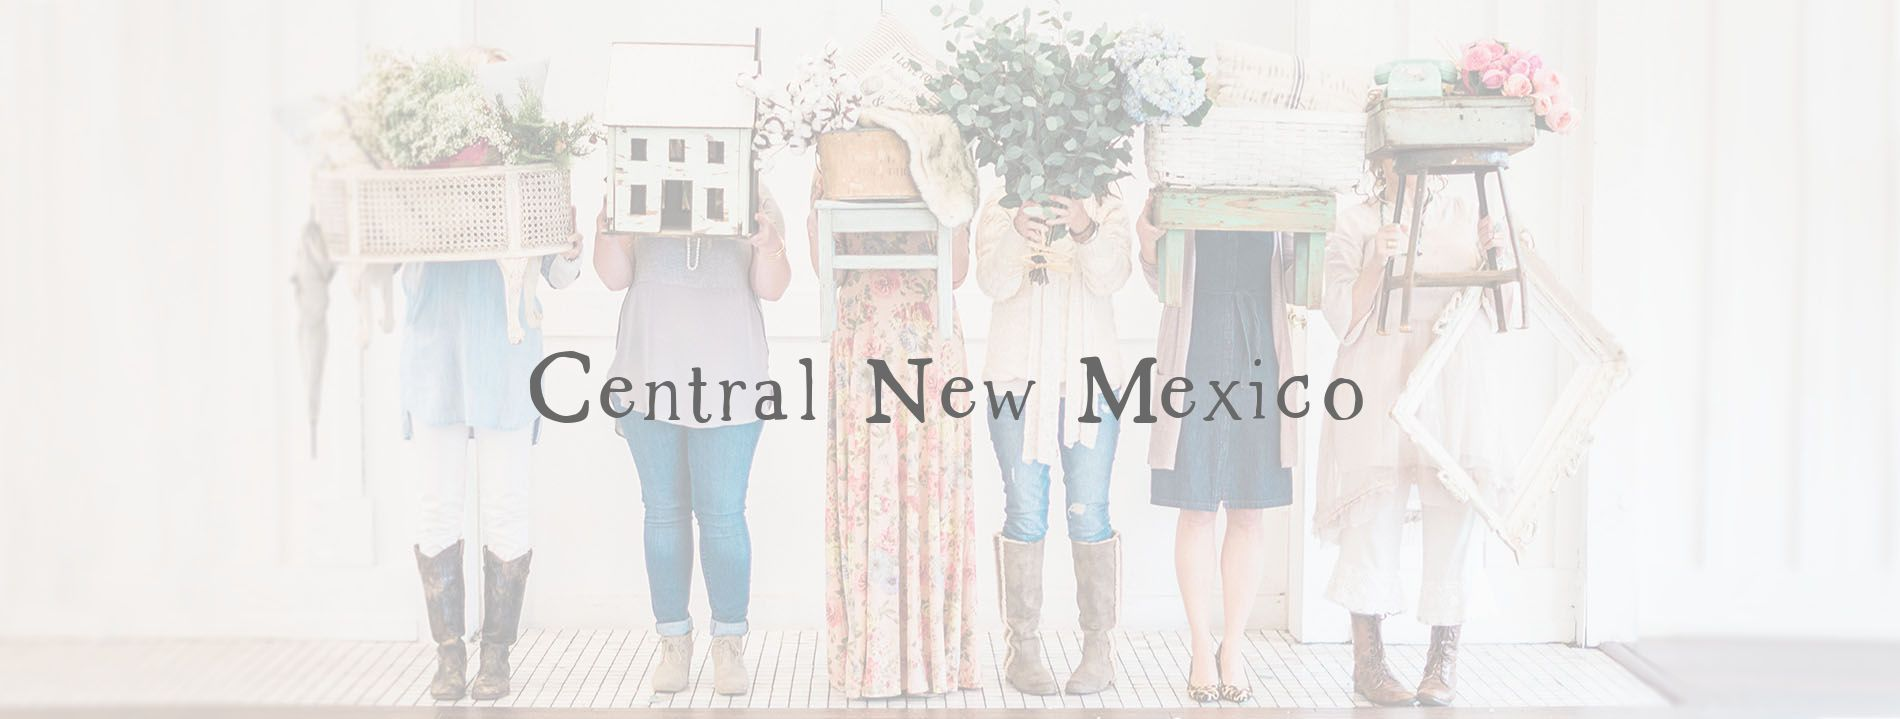 Central New Mexico